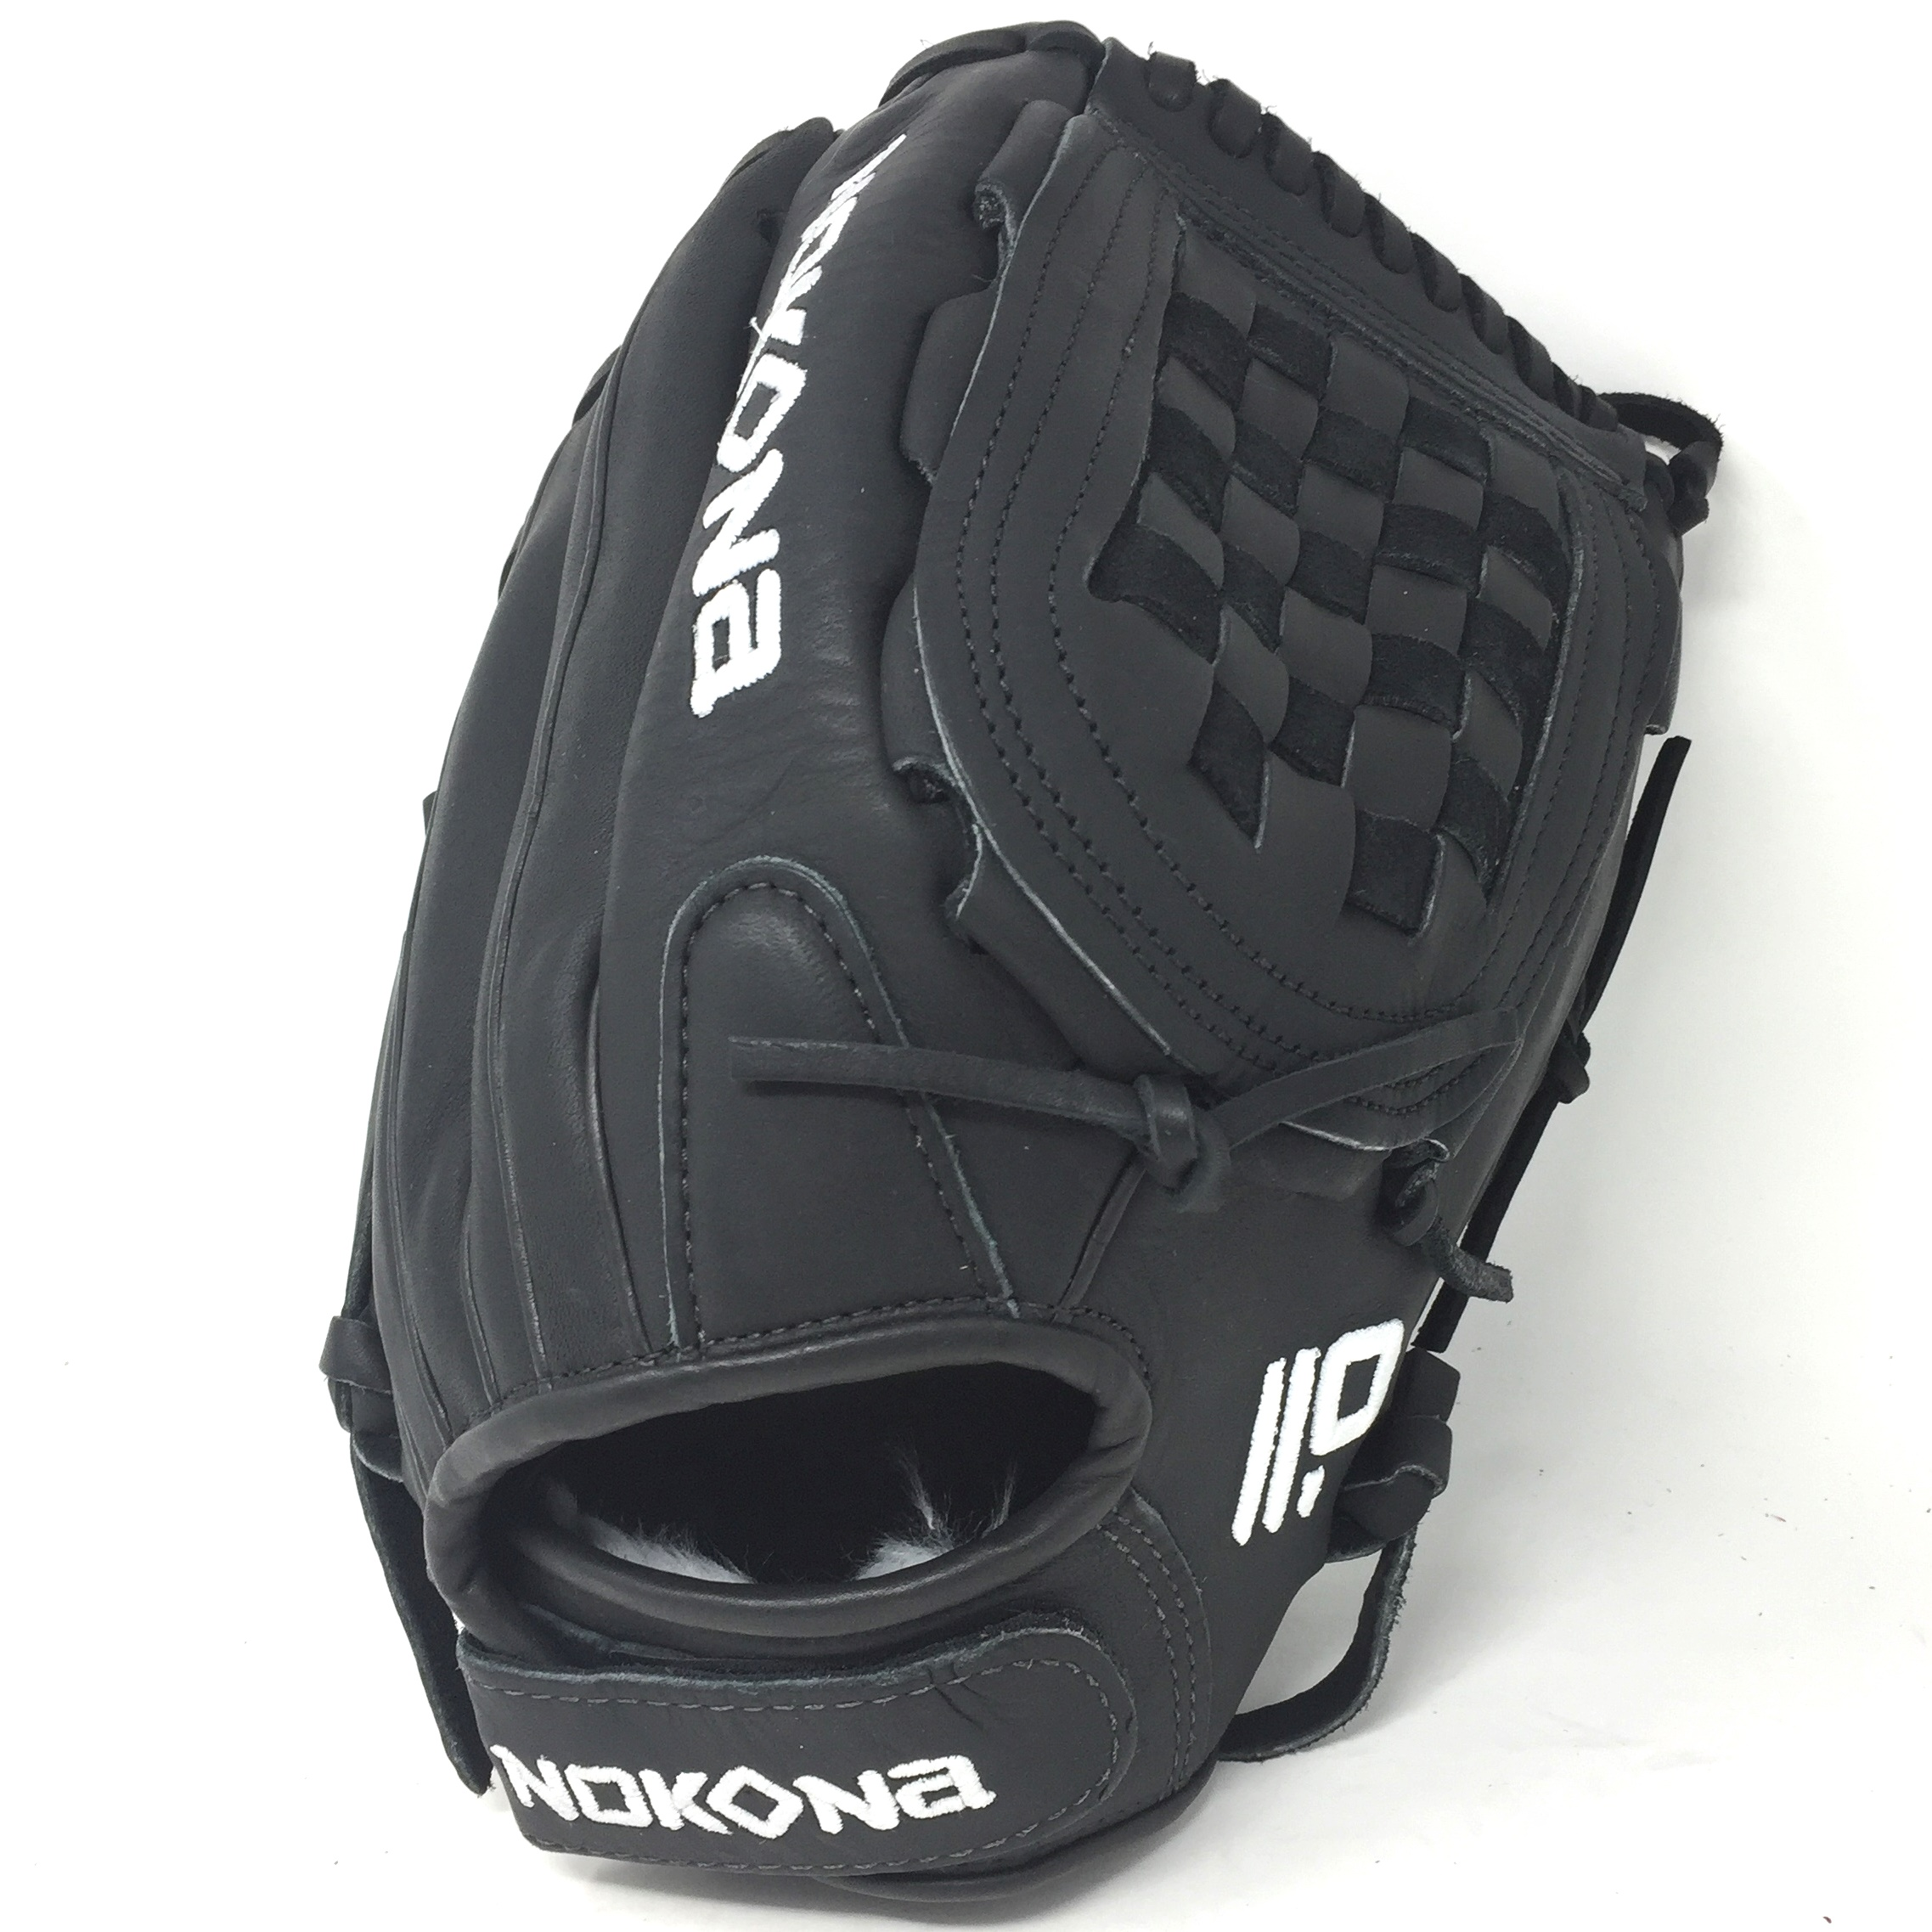 nokona-american-kip-12-5-fastpitch-softball-glove-right-hand-throw A-V1250C-BK-RightHandThrow Nokona 808808894261 12.5 Inch Pattern AmericanKIP - American Steerhide With Characteristics Similar To